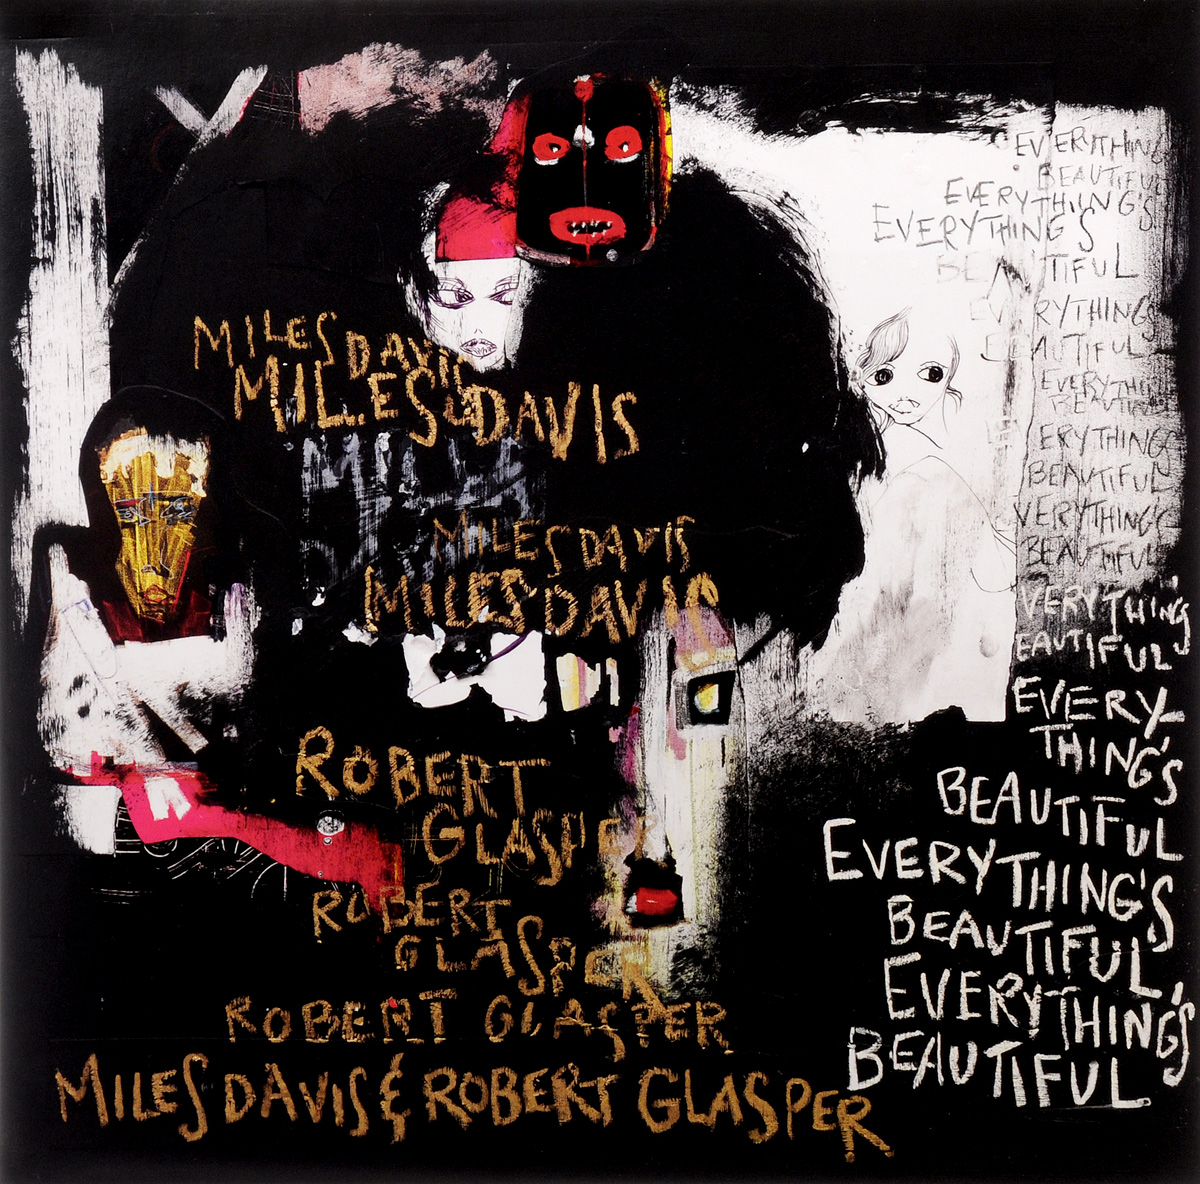 Майлз Дэвис,Роберт Глеспер Miles Davis & Robert Glasper. Everything's Beautiful (LP) miles davis robert glasper miles davis robert glasper everything s beautiful